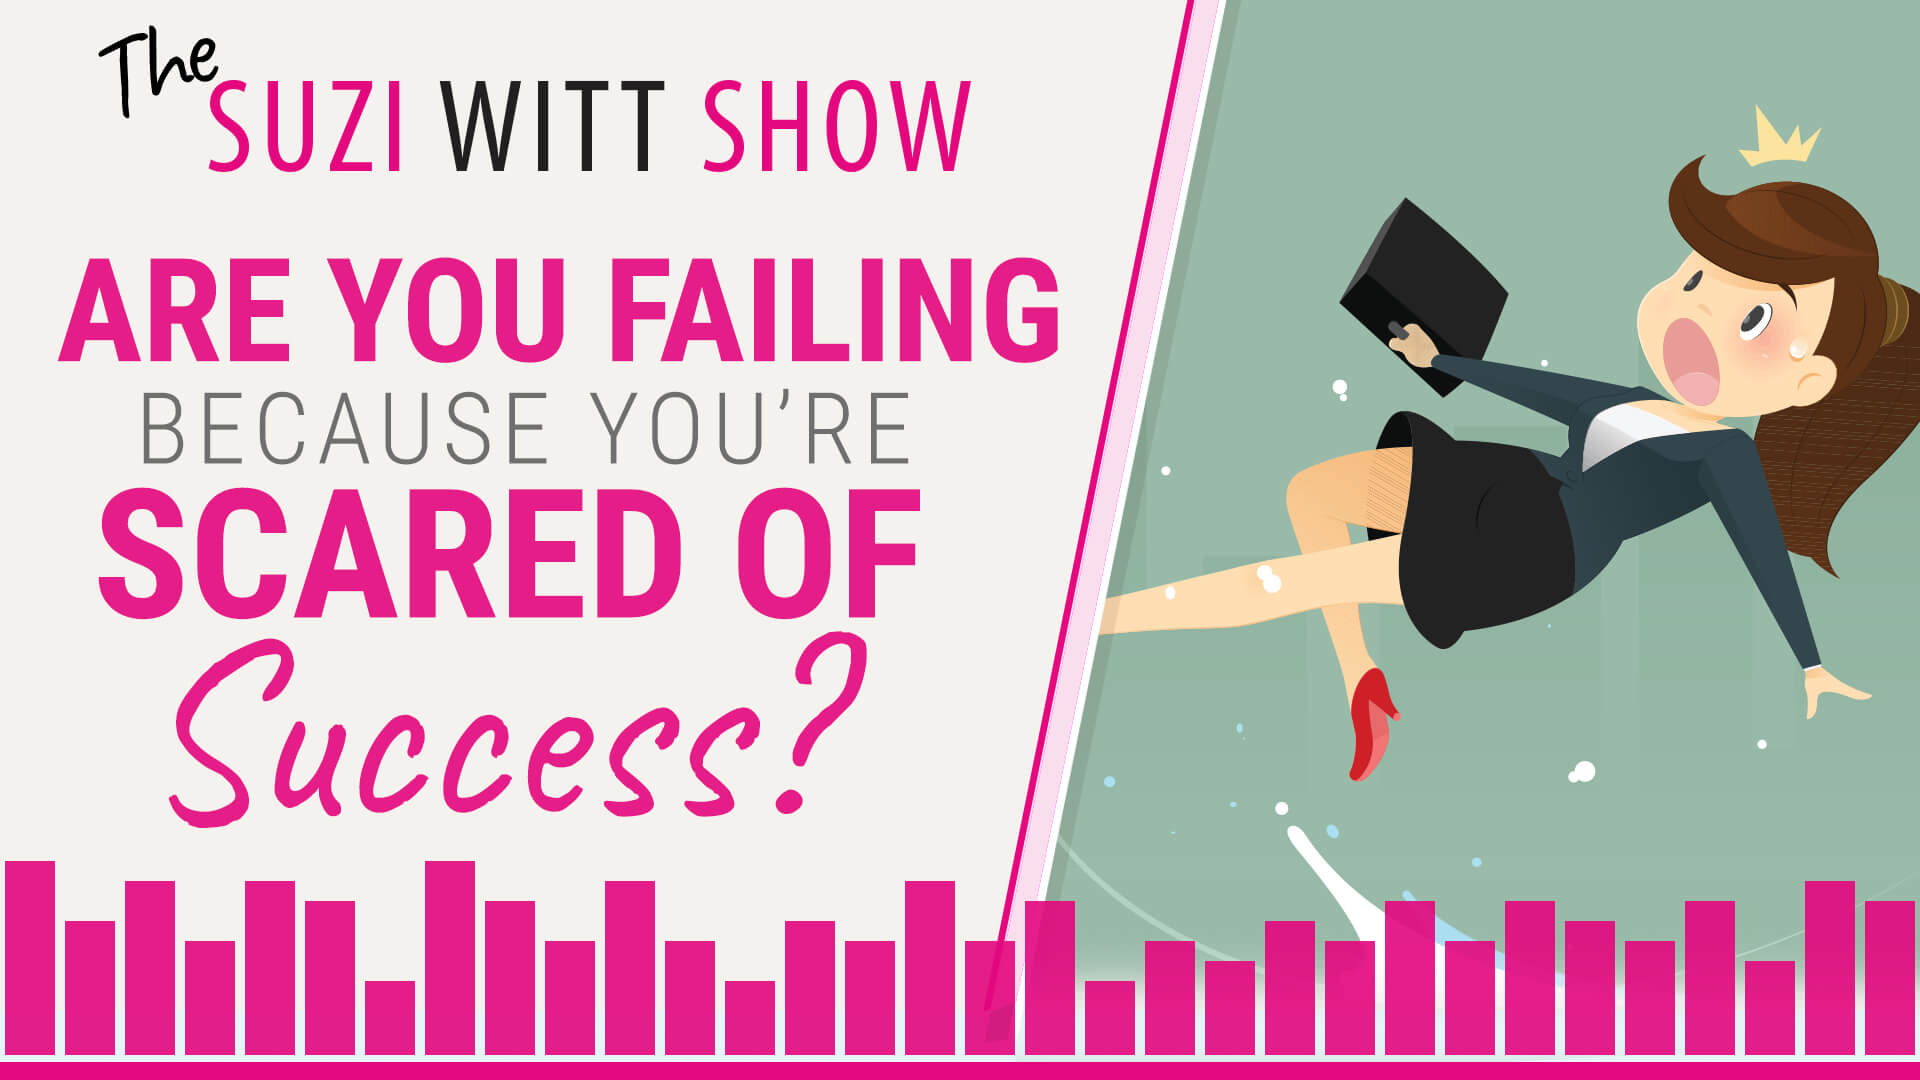 Are You Failing because You are Scared of Success?